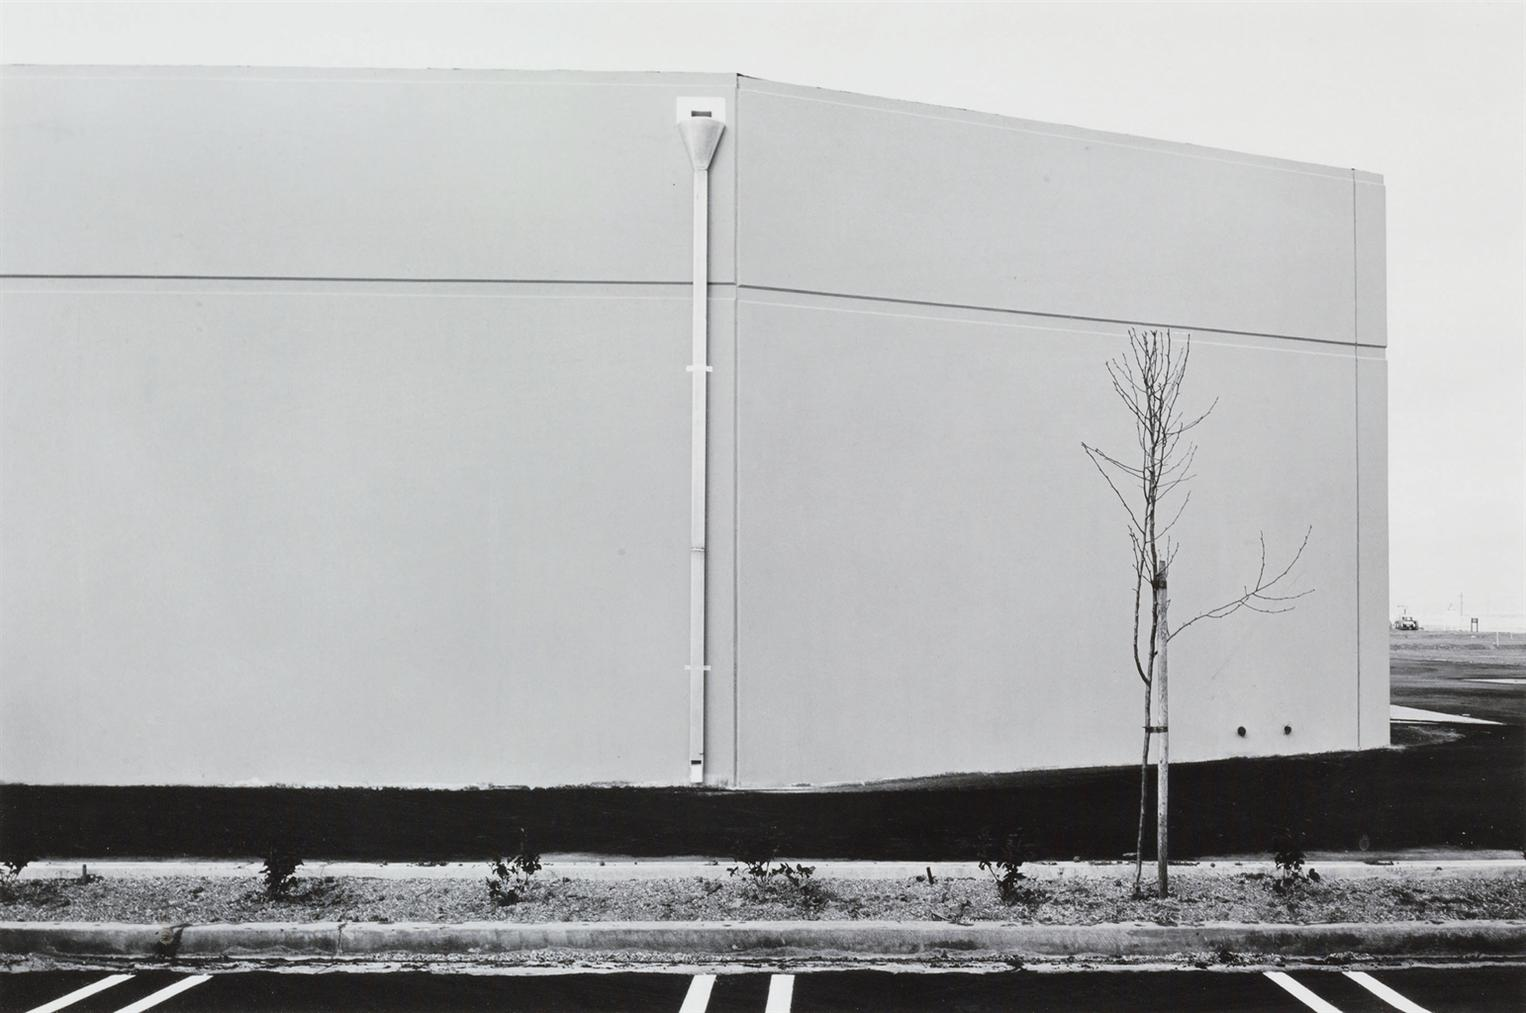 Lewis Baltz-South Wall, Unoccupied Industrial Structure, 16812 Milliken, Irvine, #19 From The New Industrial Parks Near Irvine, California-1974